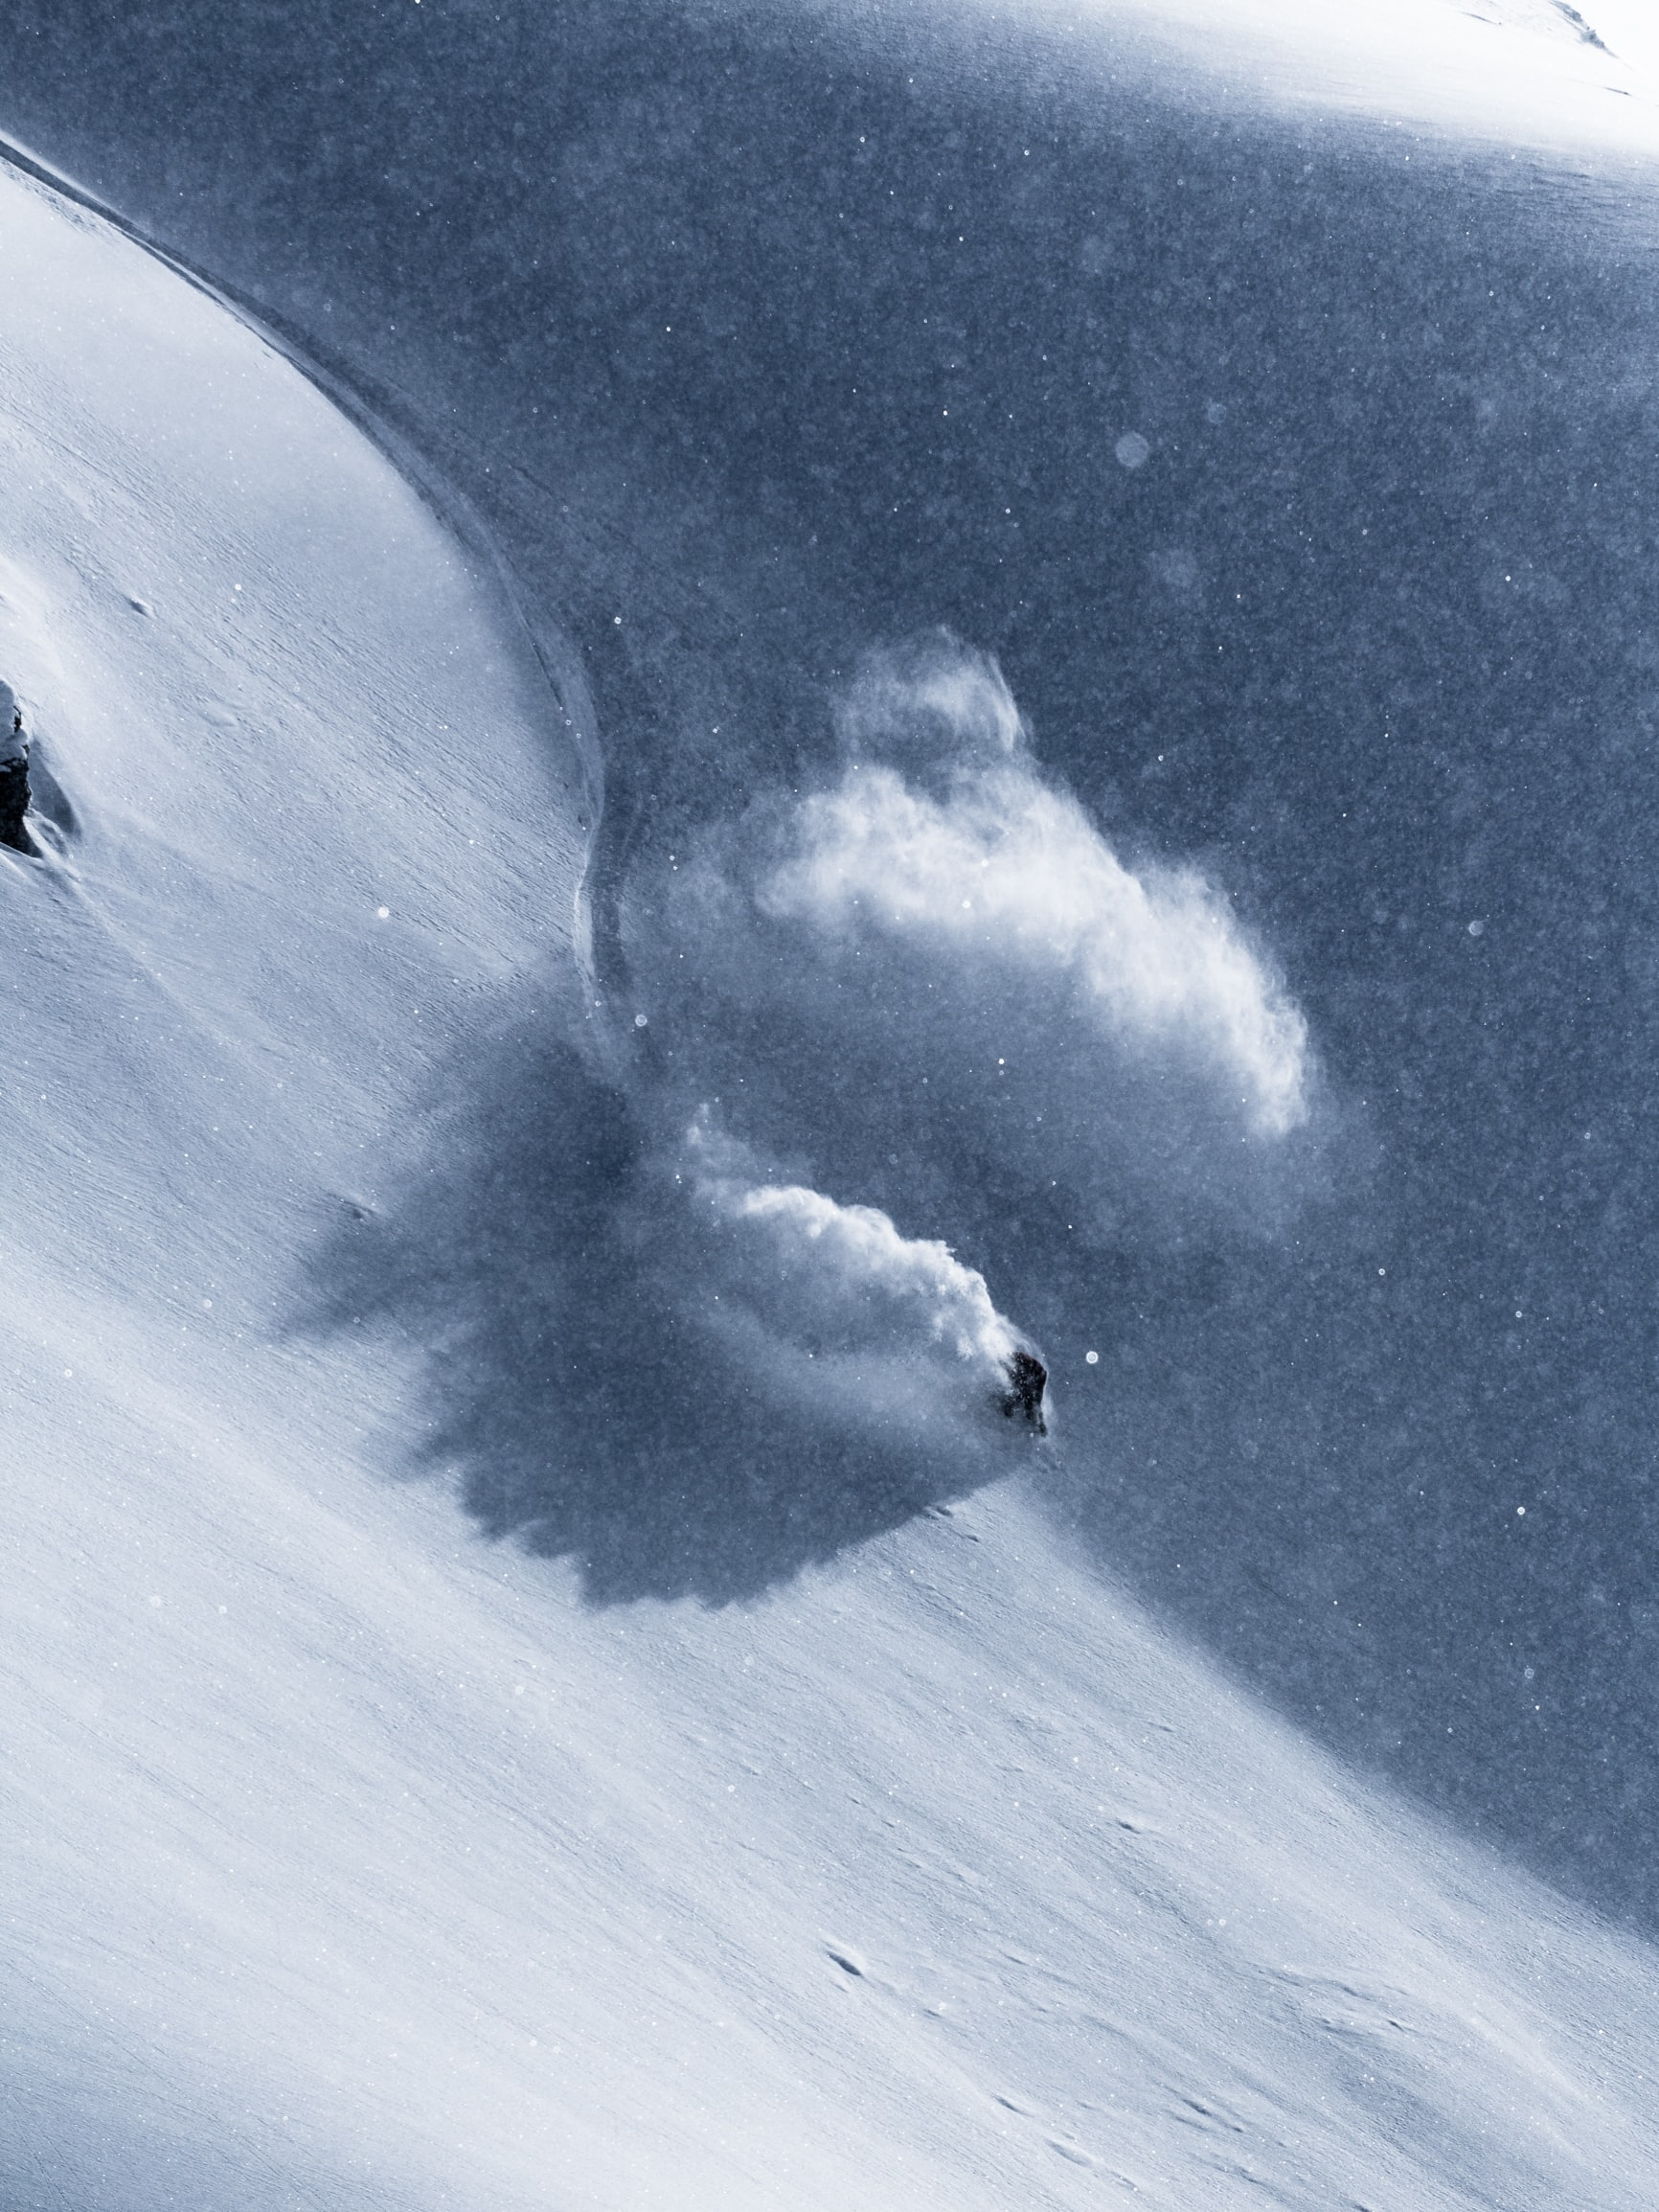 person snowboarding on tundra